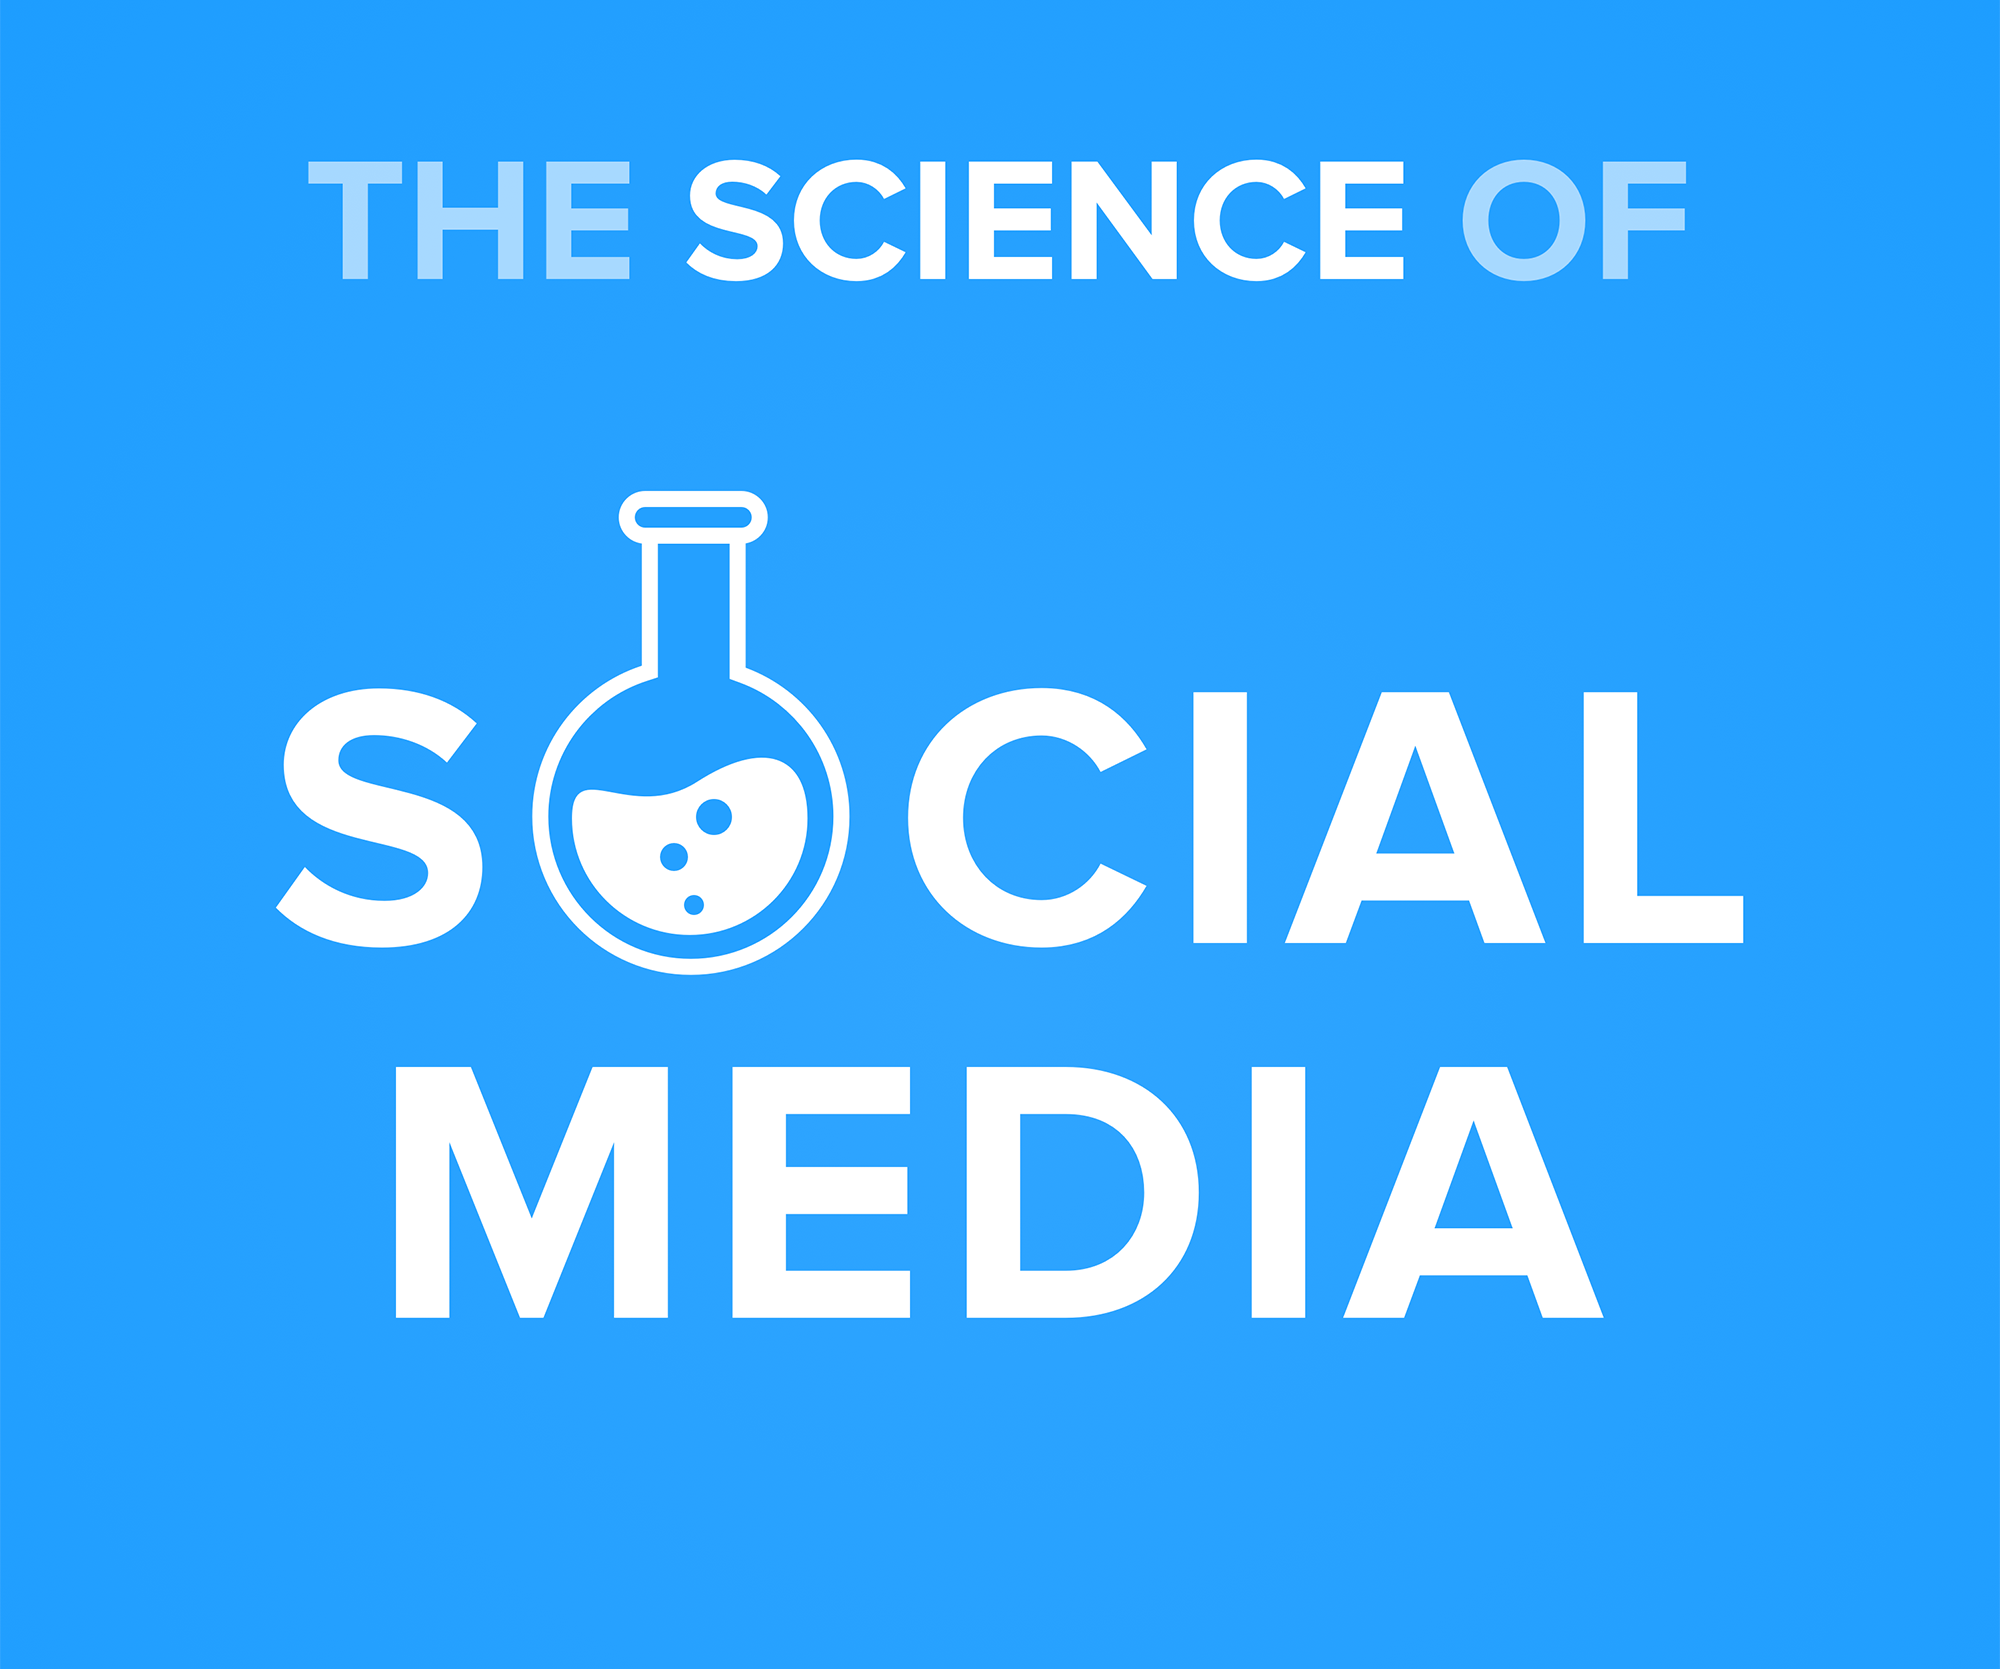 A photo of The Science of Social Media Logo